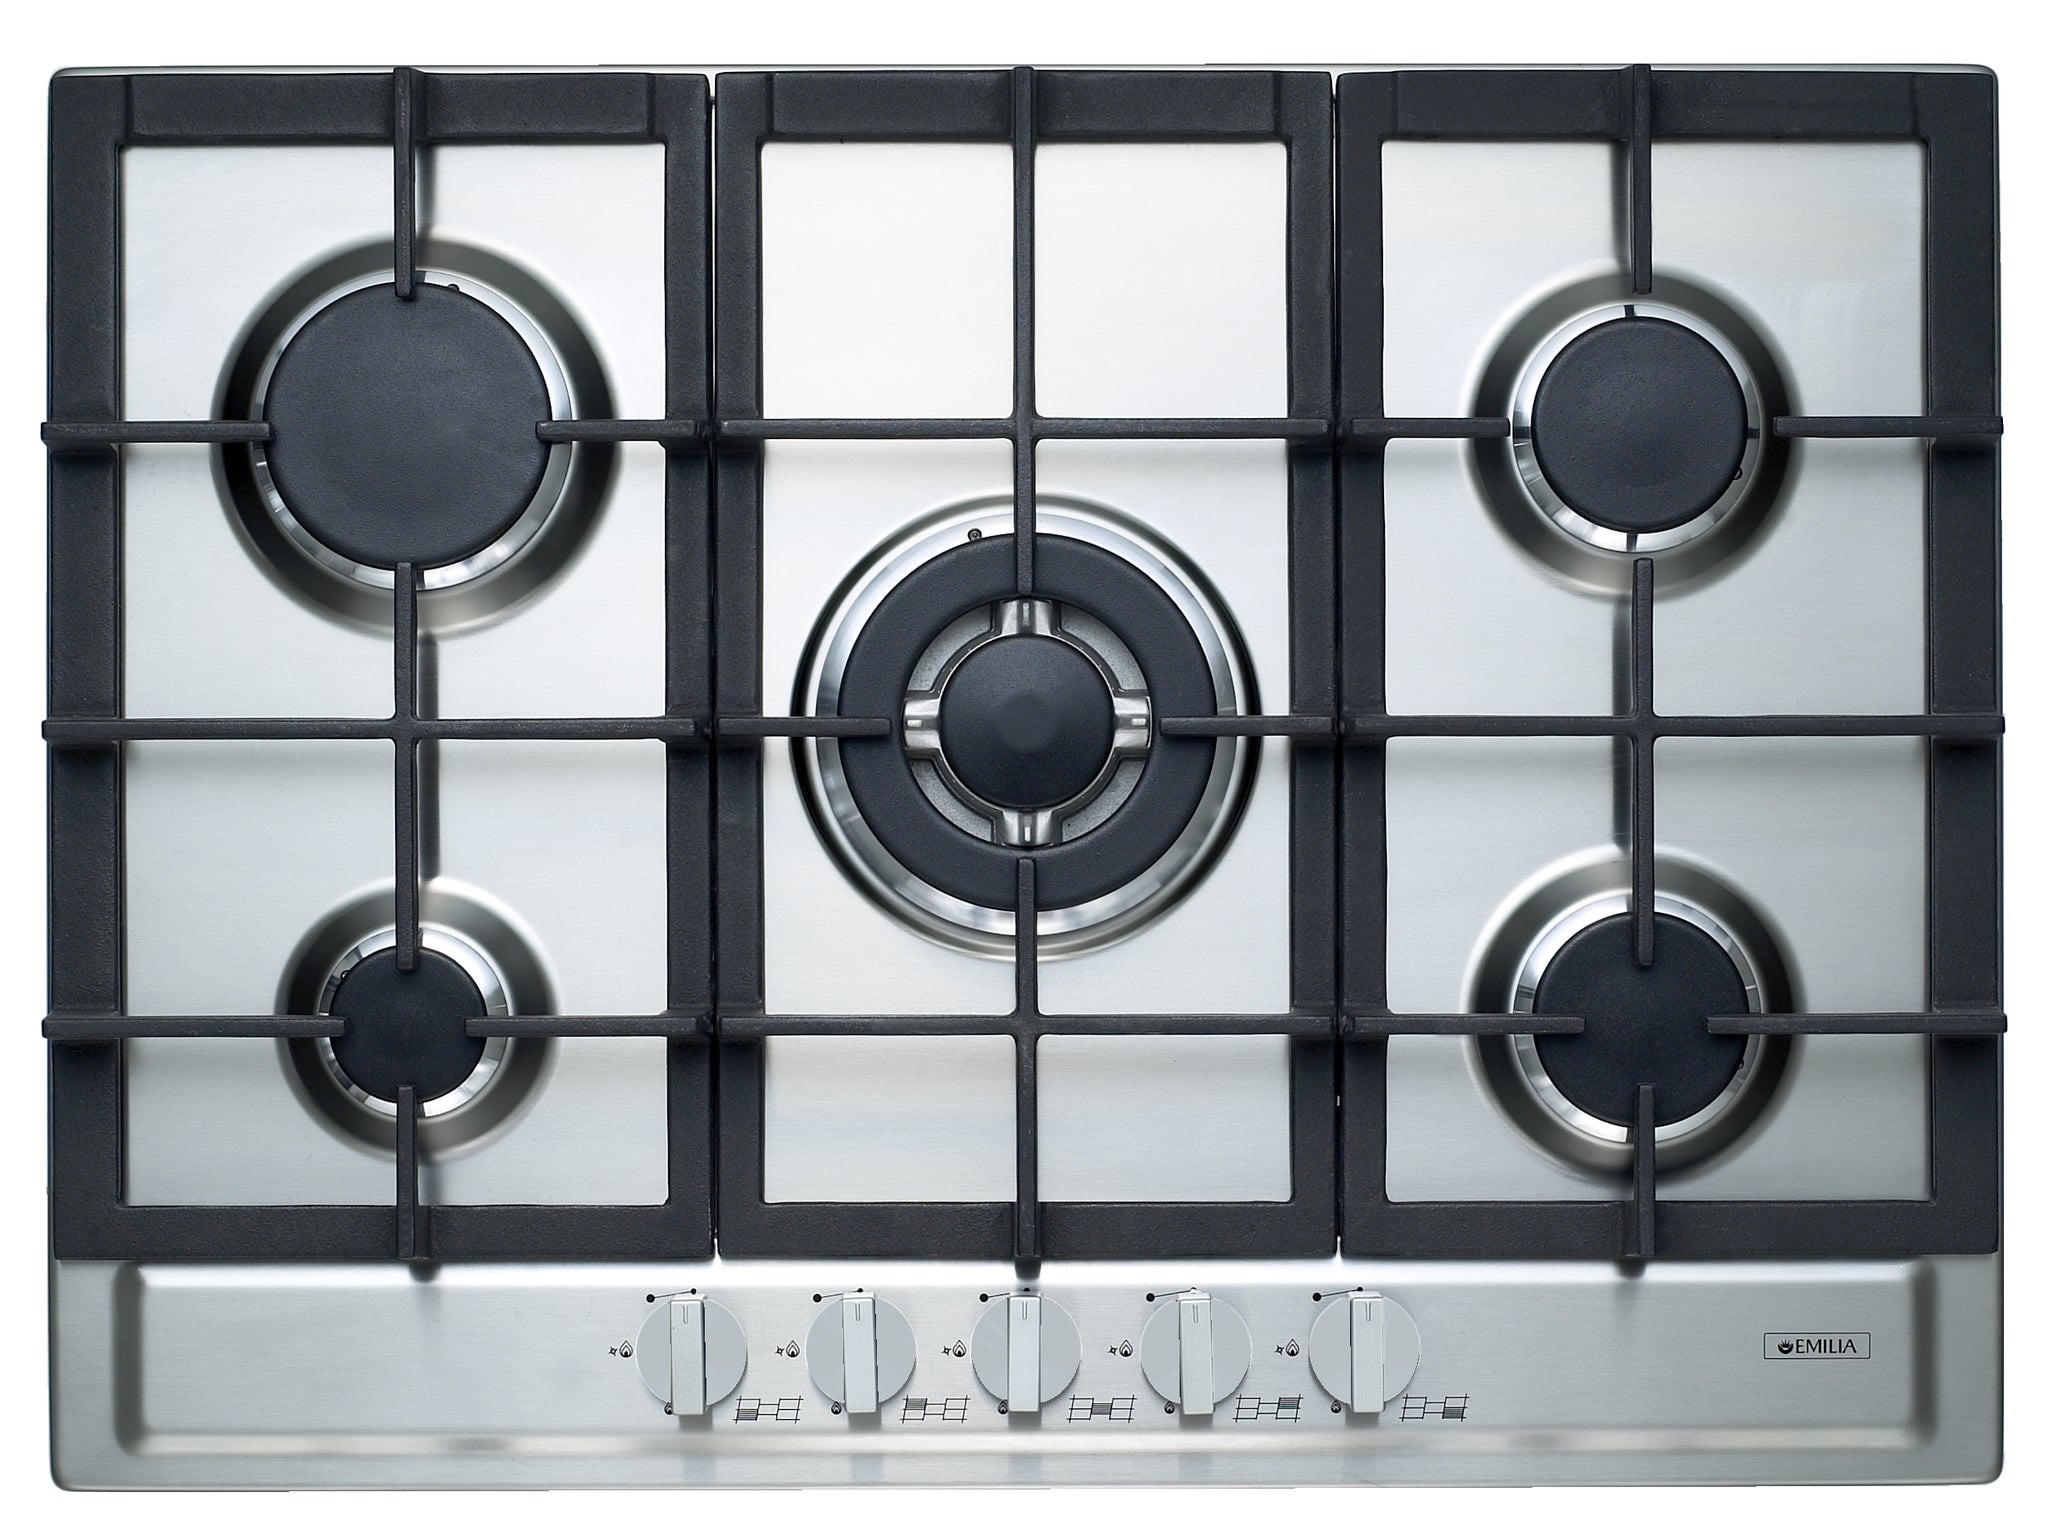 Emilia SEC75GWI 70cm Stainless Steel Gas Cooktop